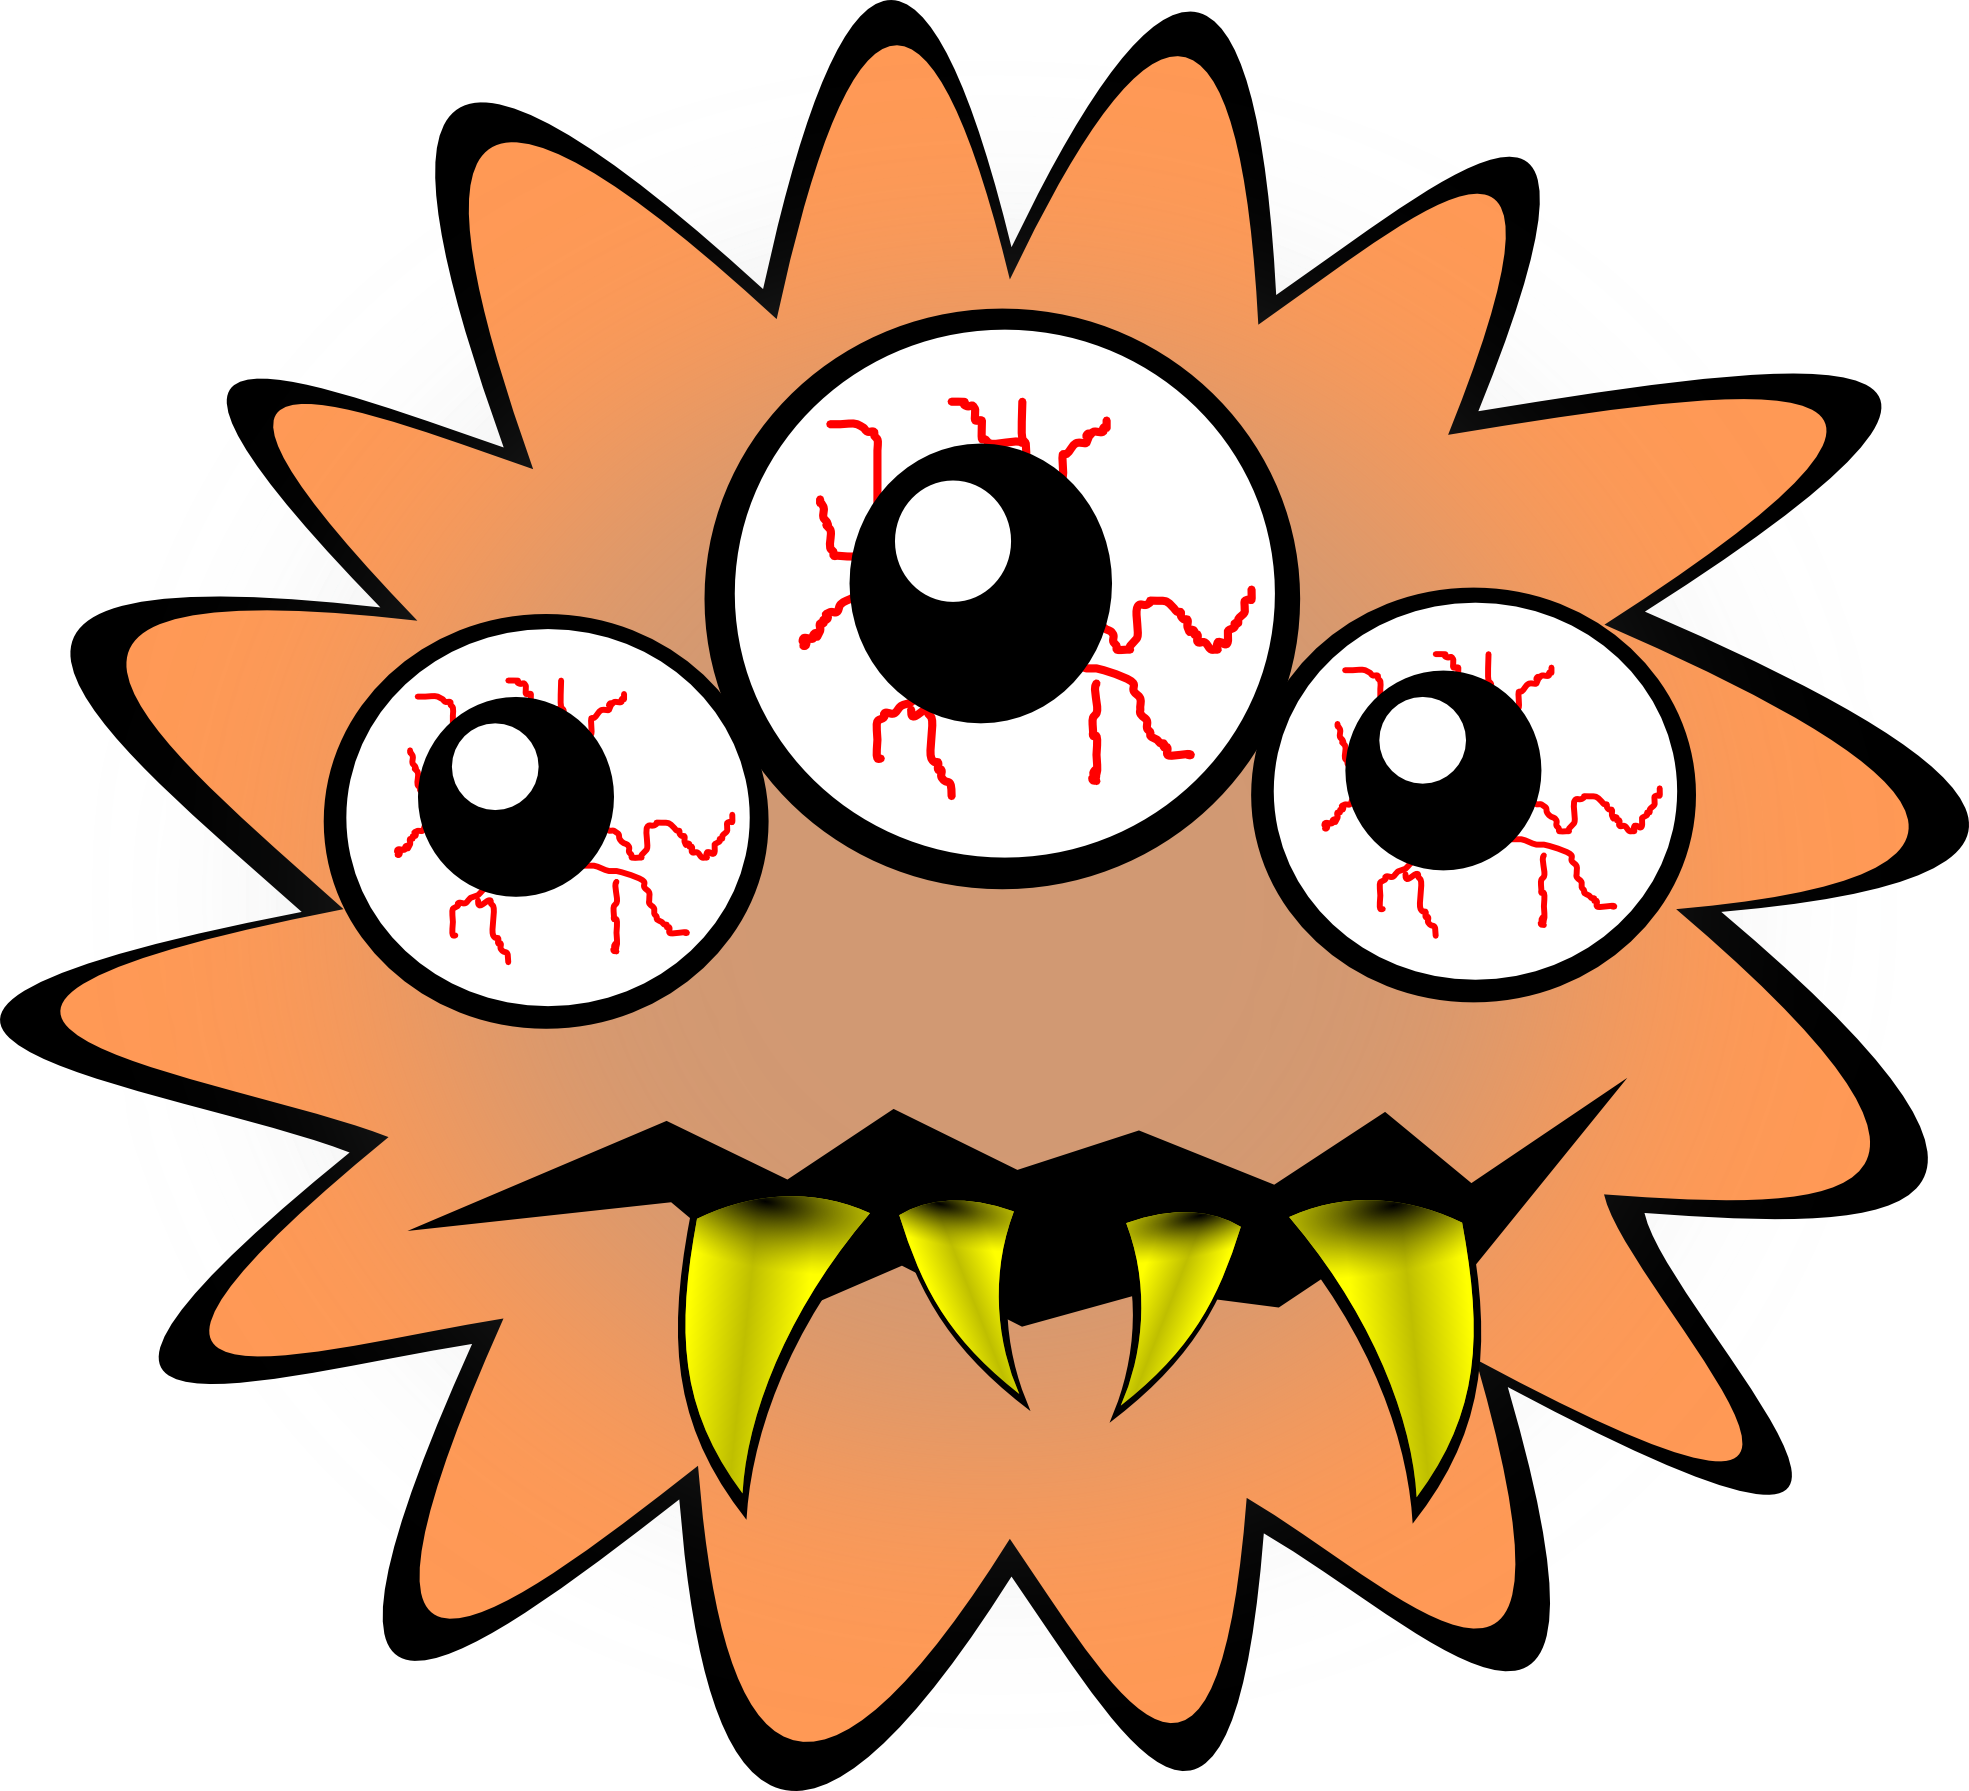 Bacteria png happy. Transparent images all image